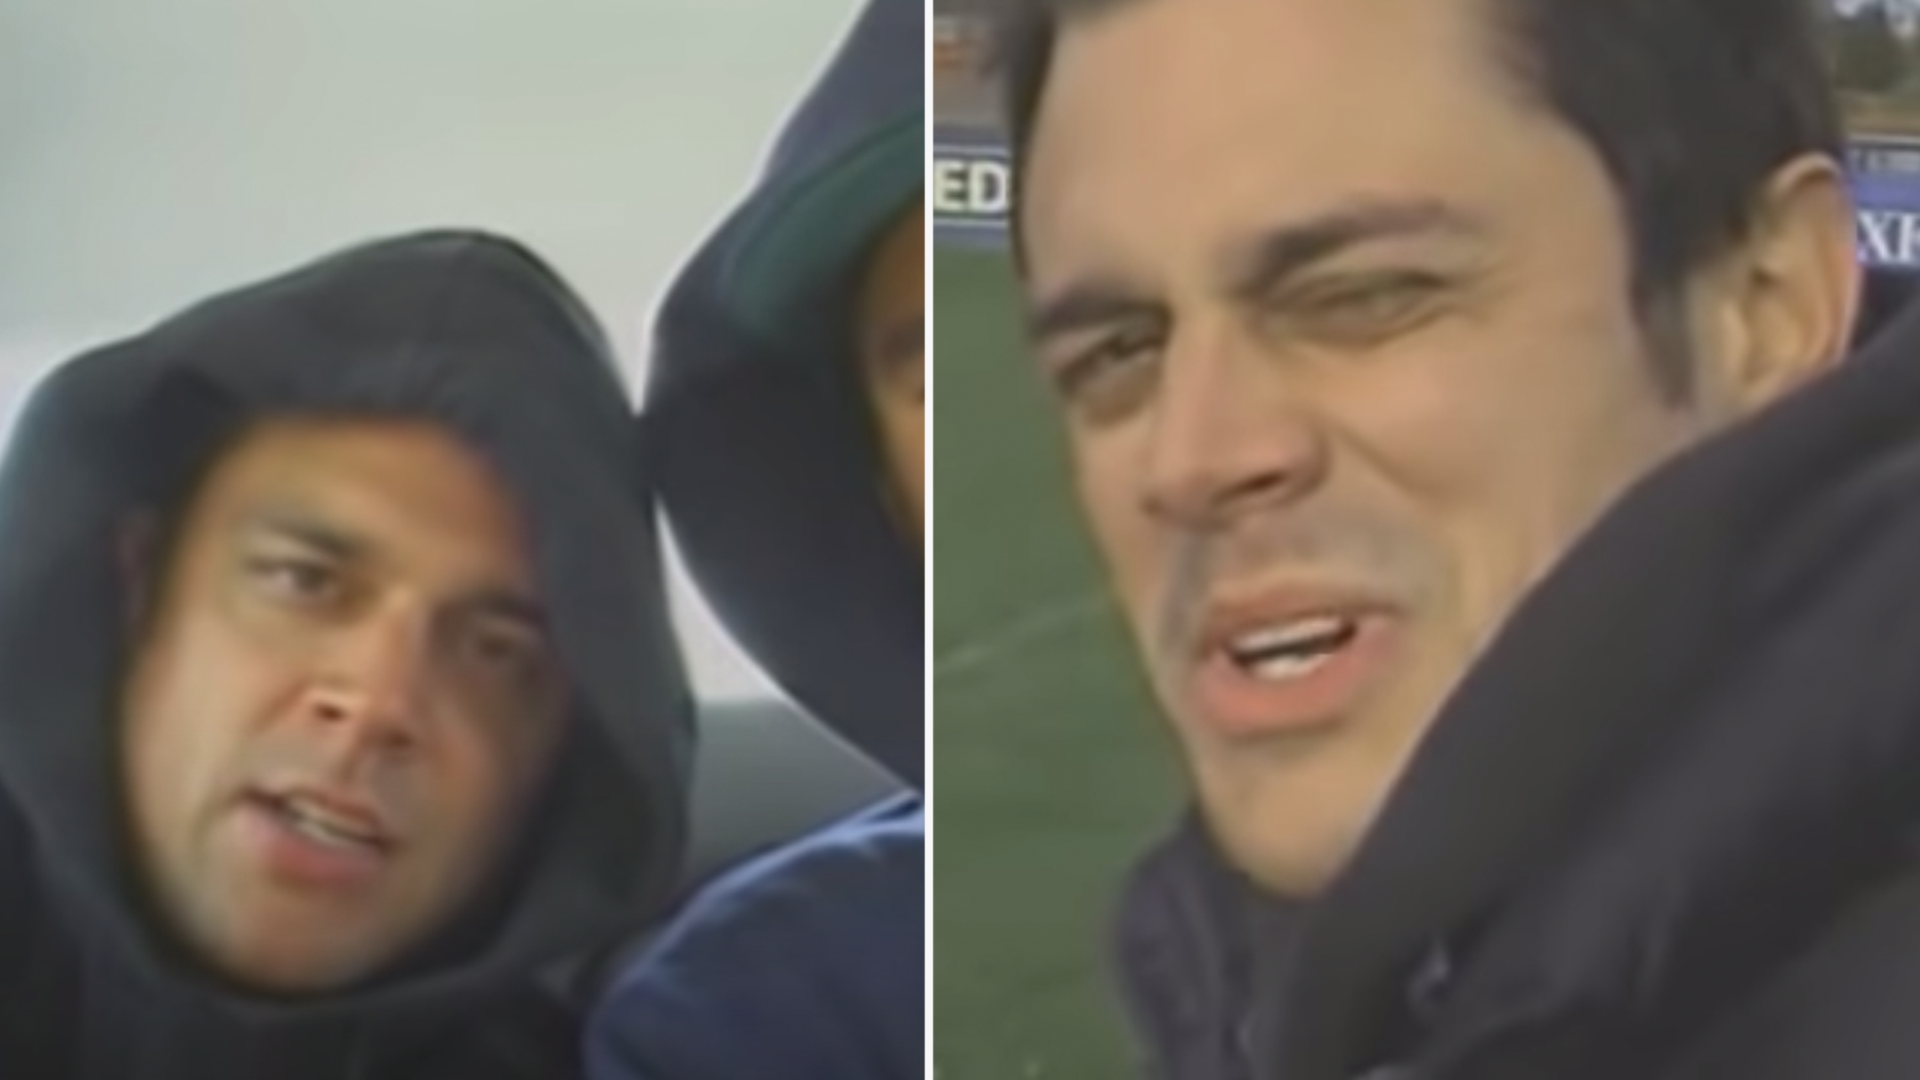 The time when Johnny Knoxville played rugby and got it handed to him